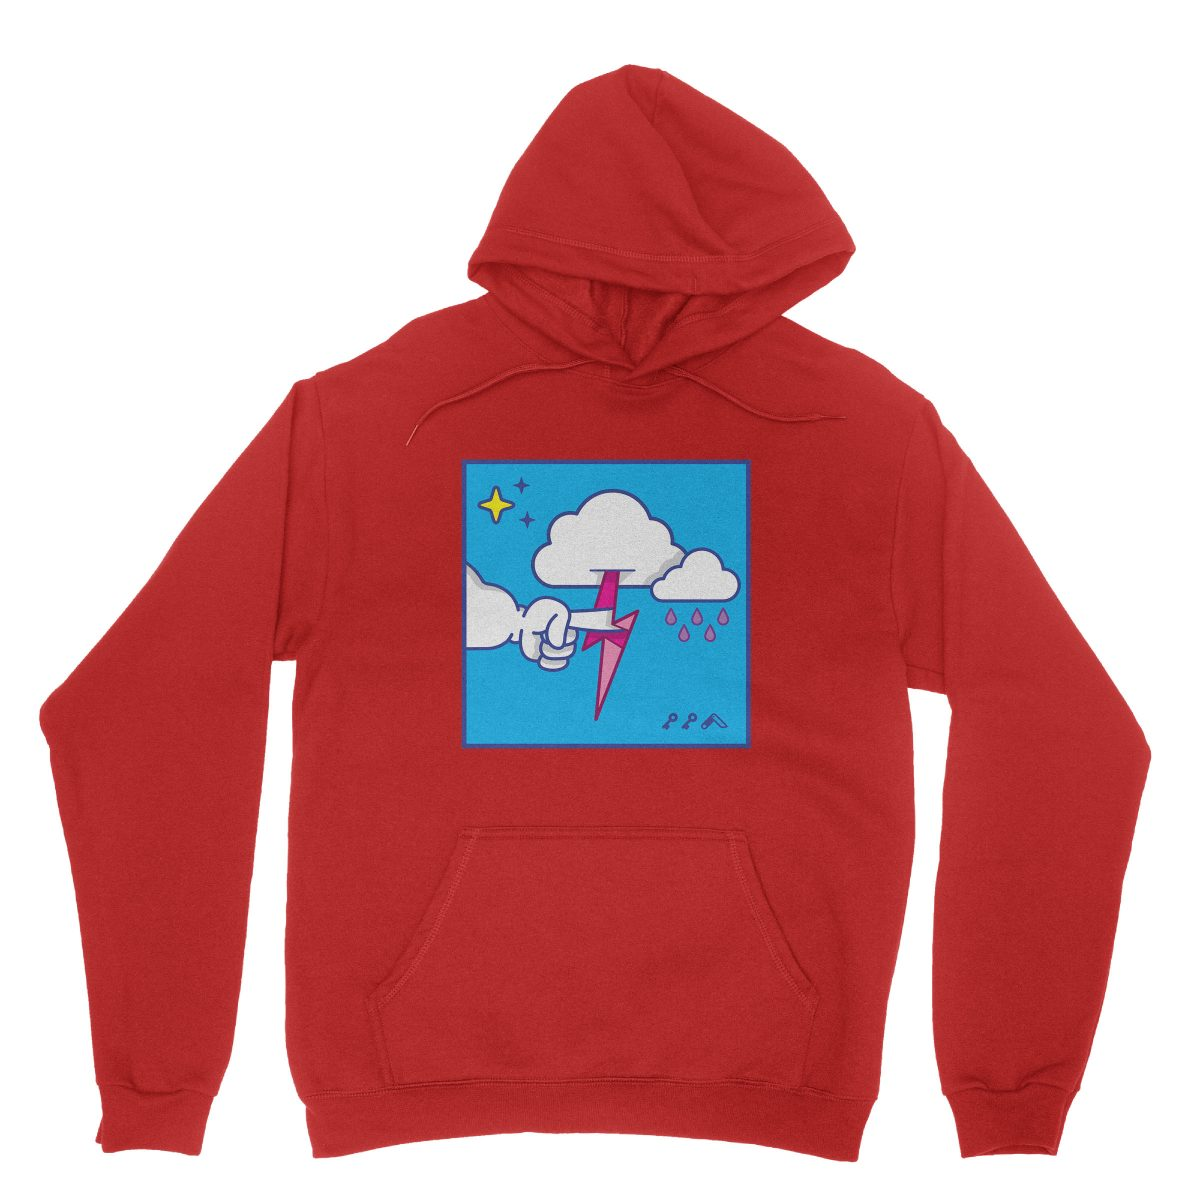 """""""MUTUAL CLOUDSENT"""" funny adult cartoon animation style hoodies in red at kikicutt.com"""